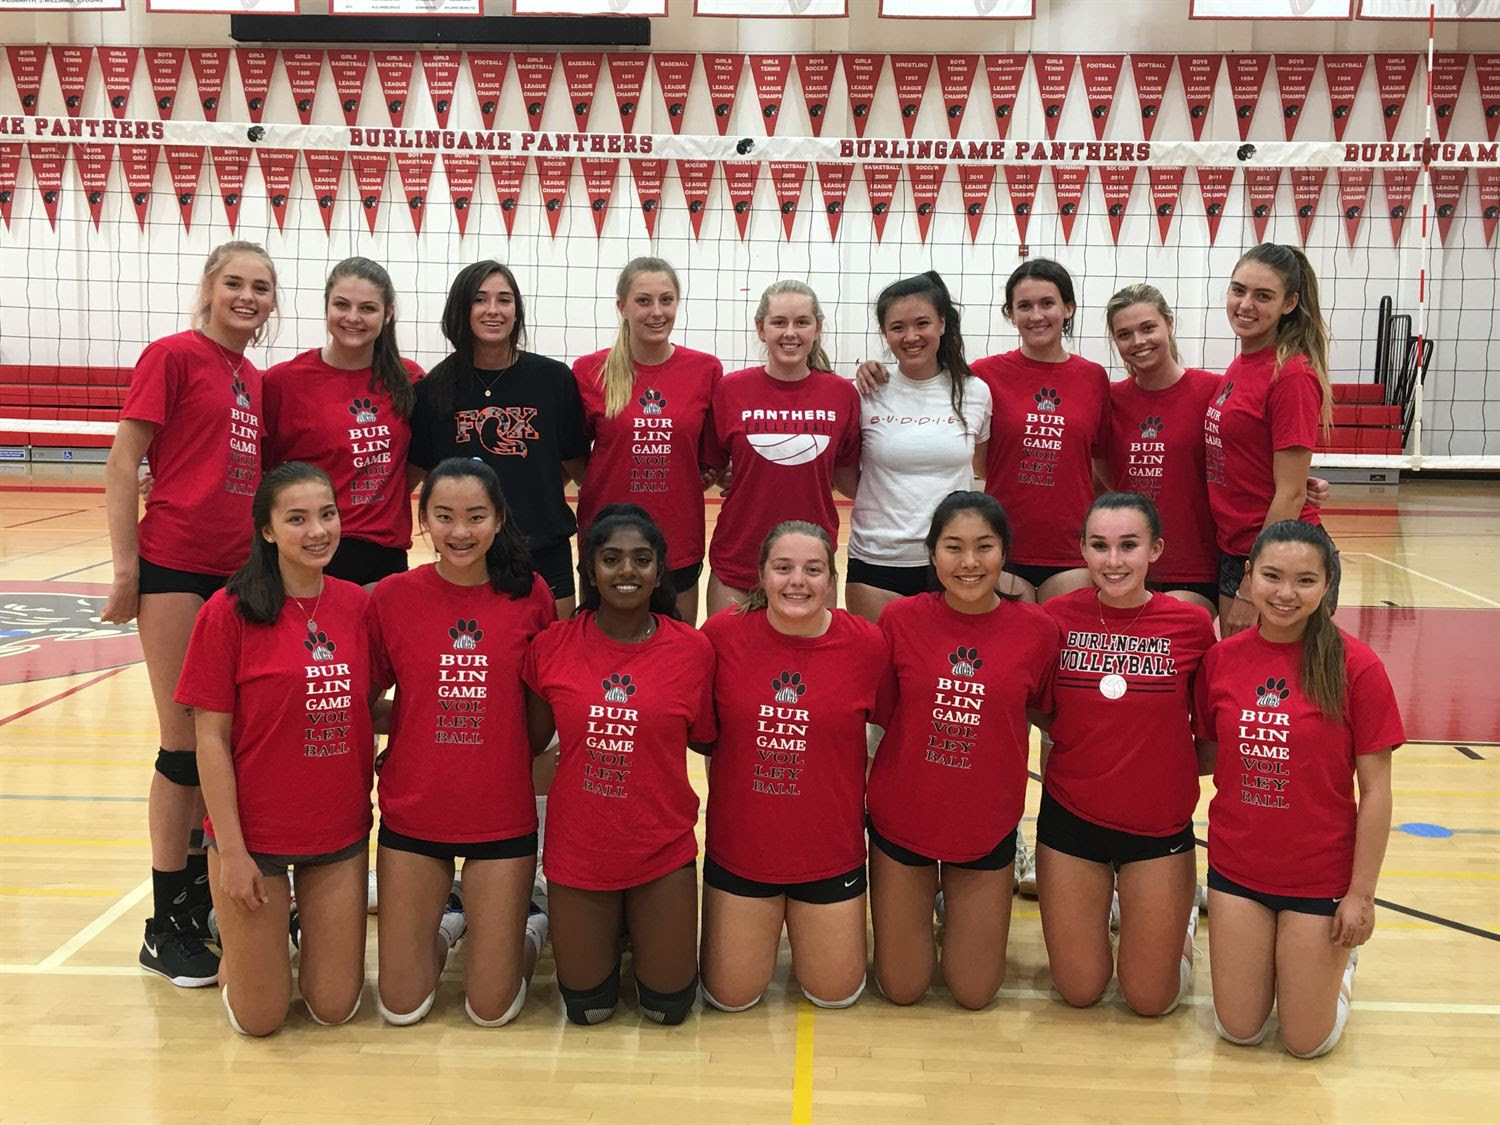 Congratulations to our Girls Volleyball Team